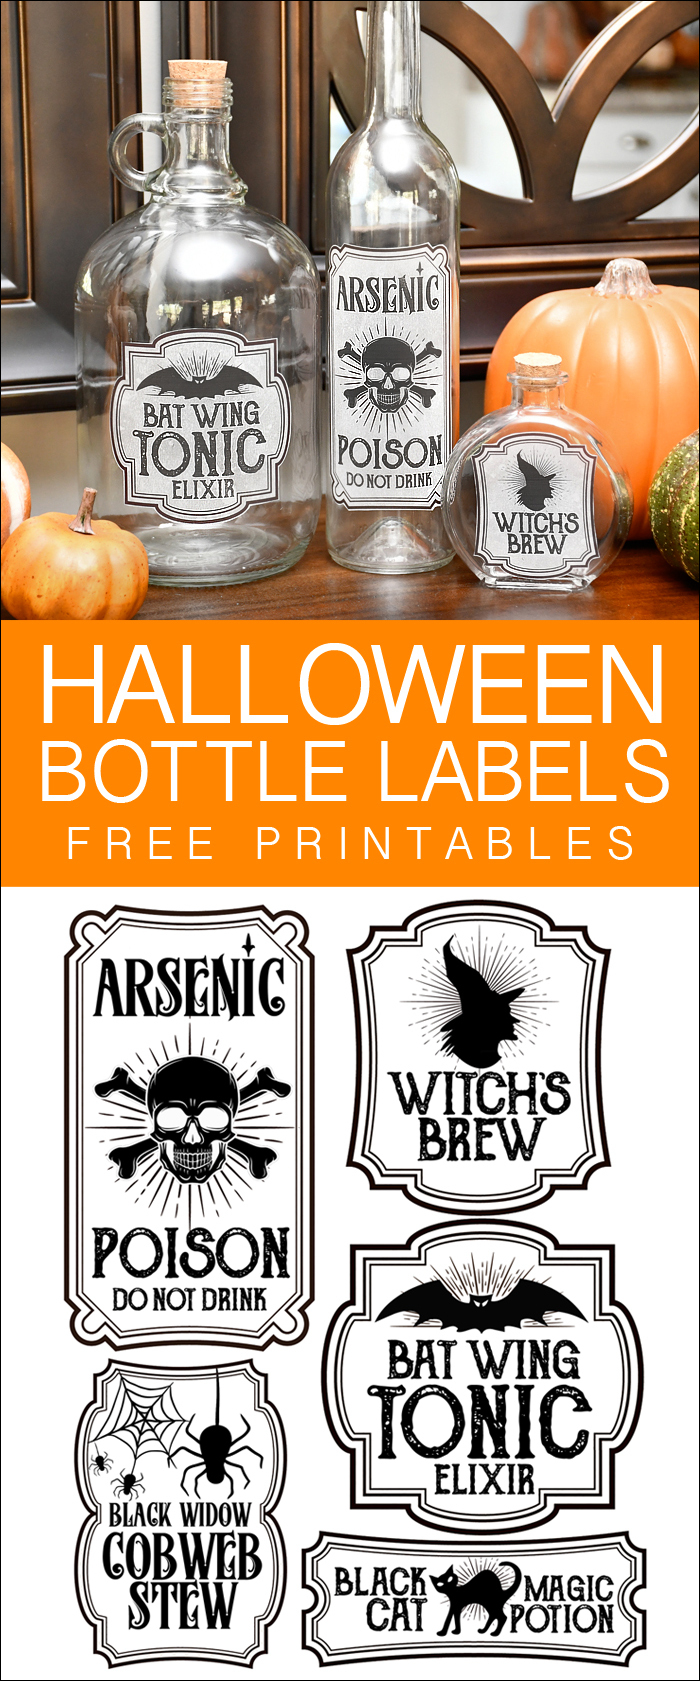 Halloween Bottle Labels - Free Printables - Potions Labels - Free Printable Halloween Bottle Labels